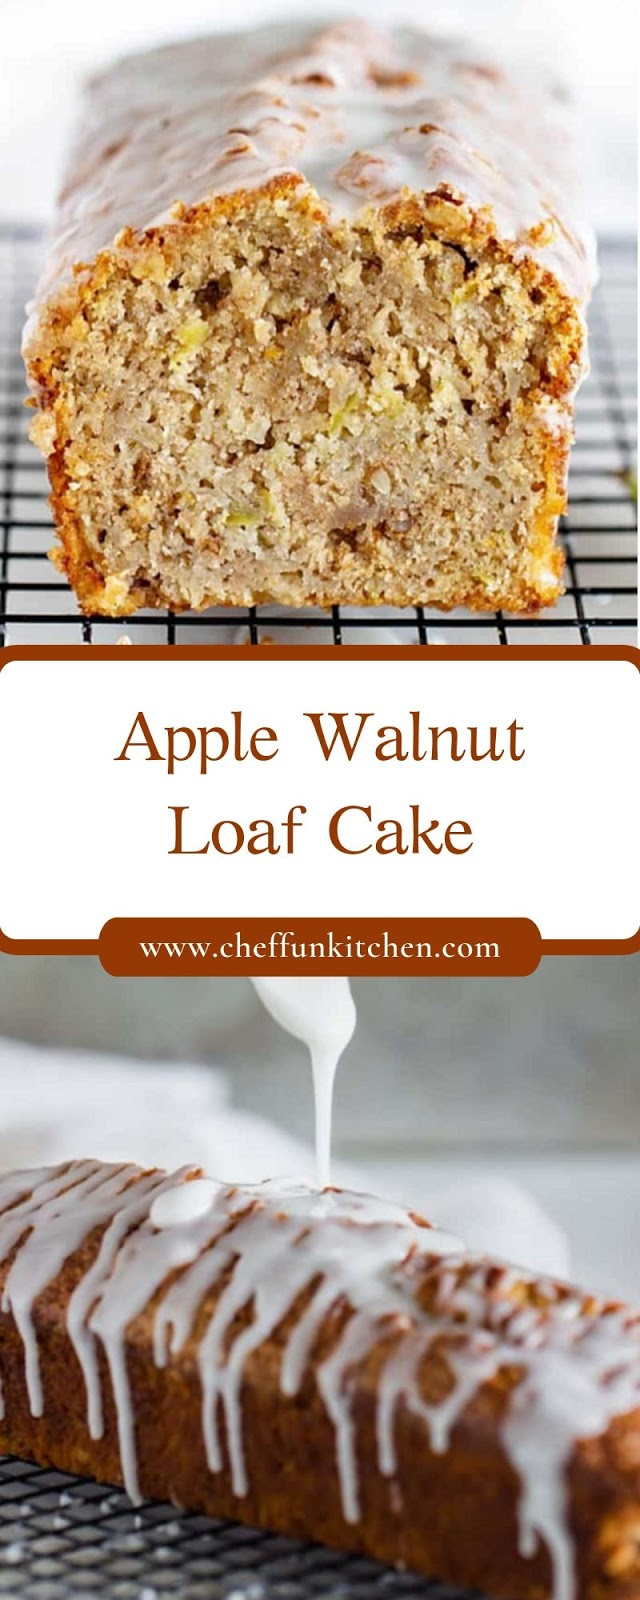 Apple Walnut Loaf Cake